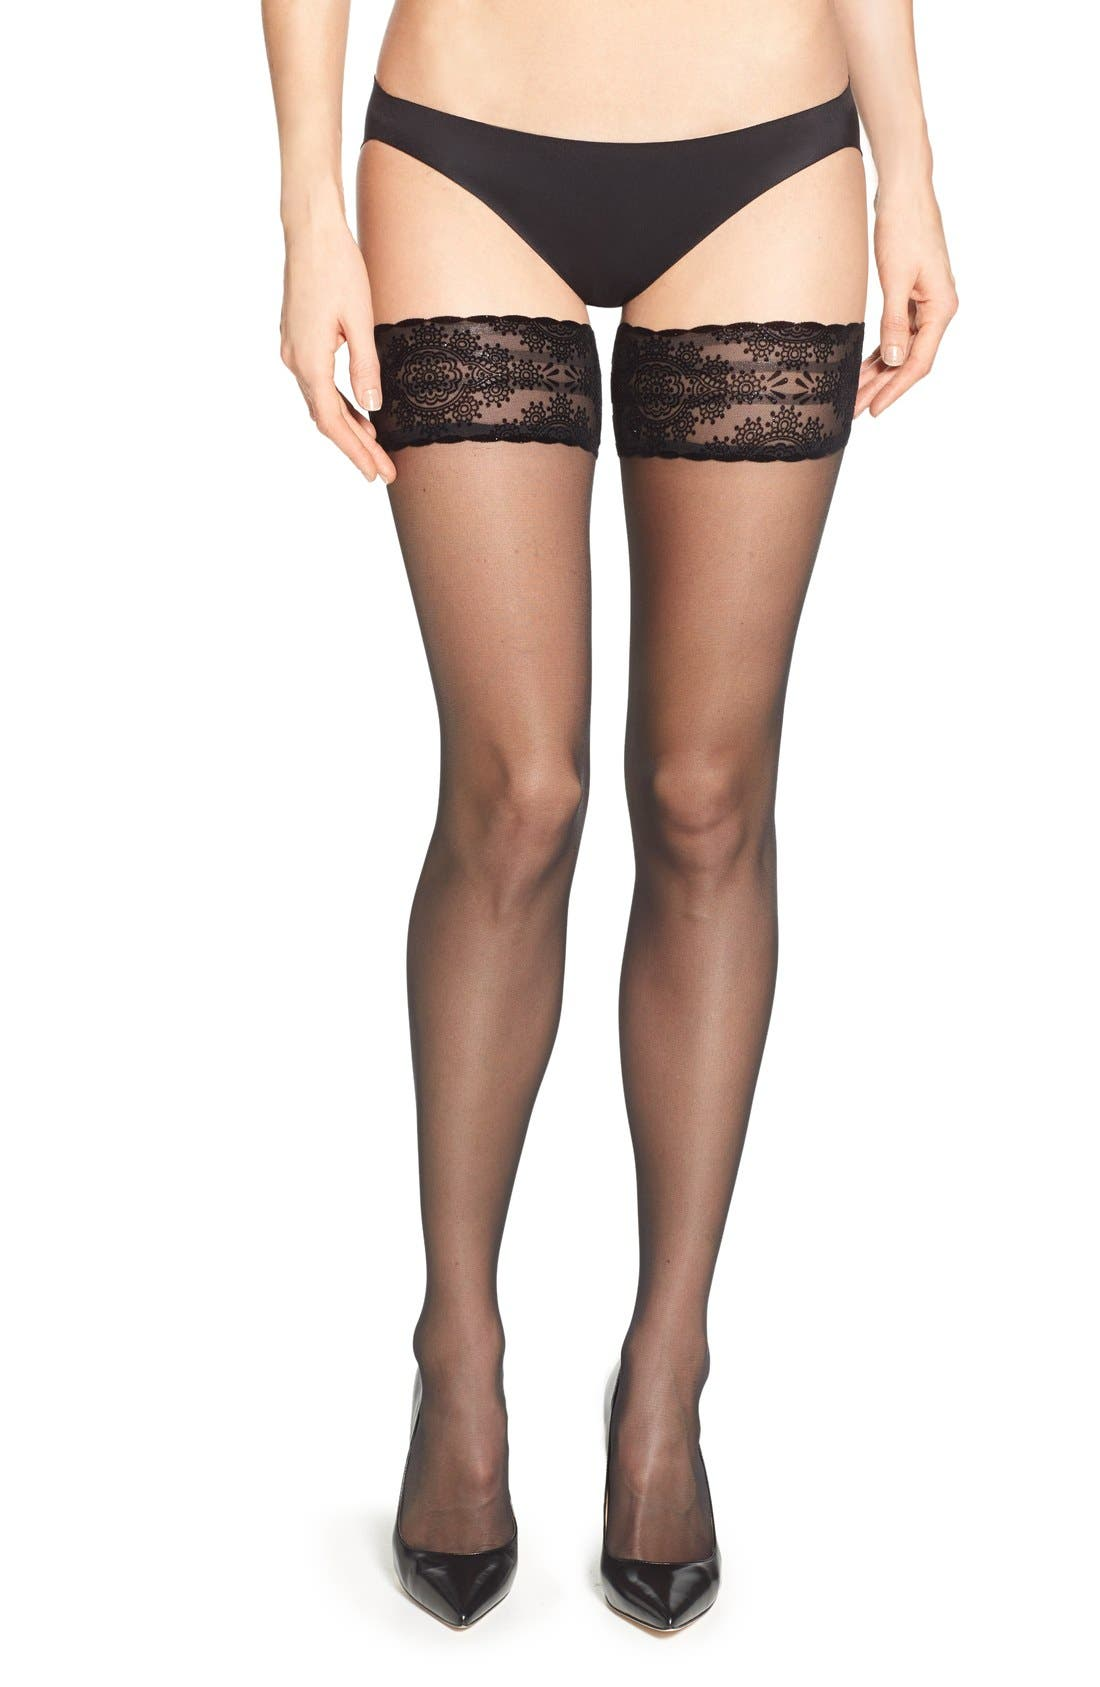 Main Image - Wolford 'Glam' Thigh High Stay Up Stockings